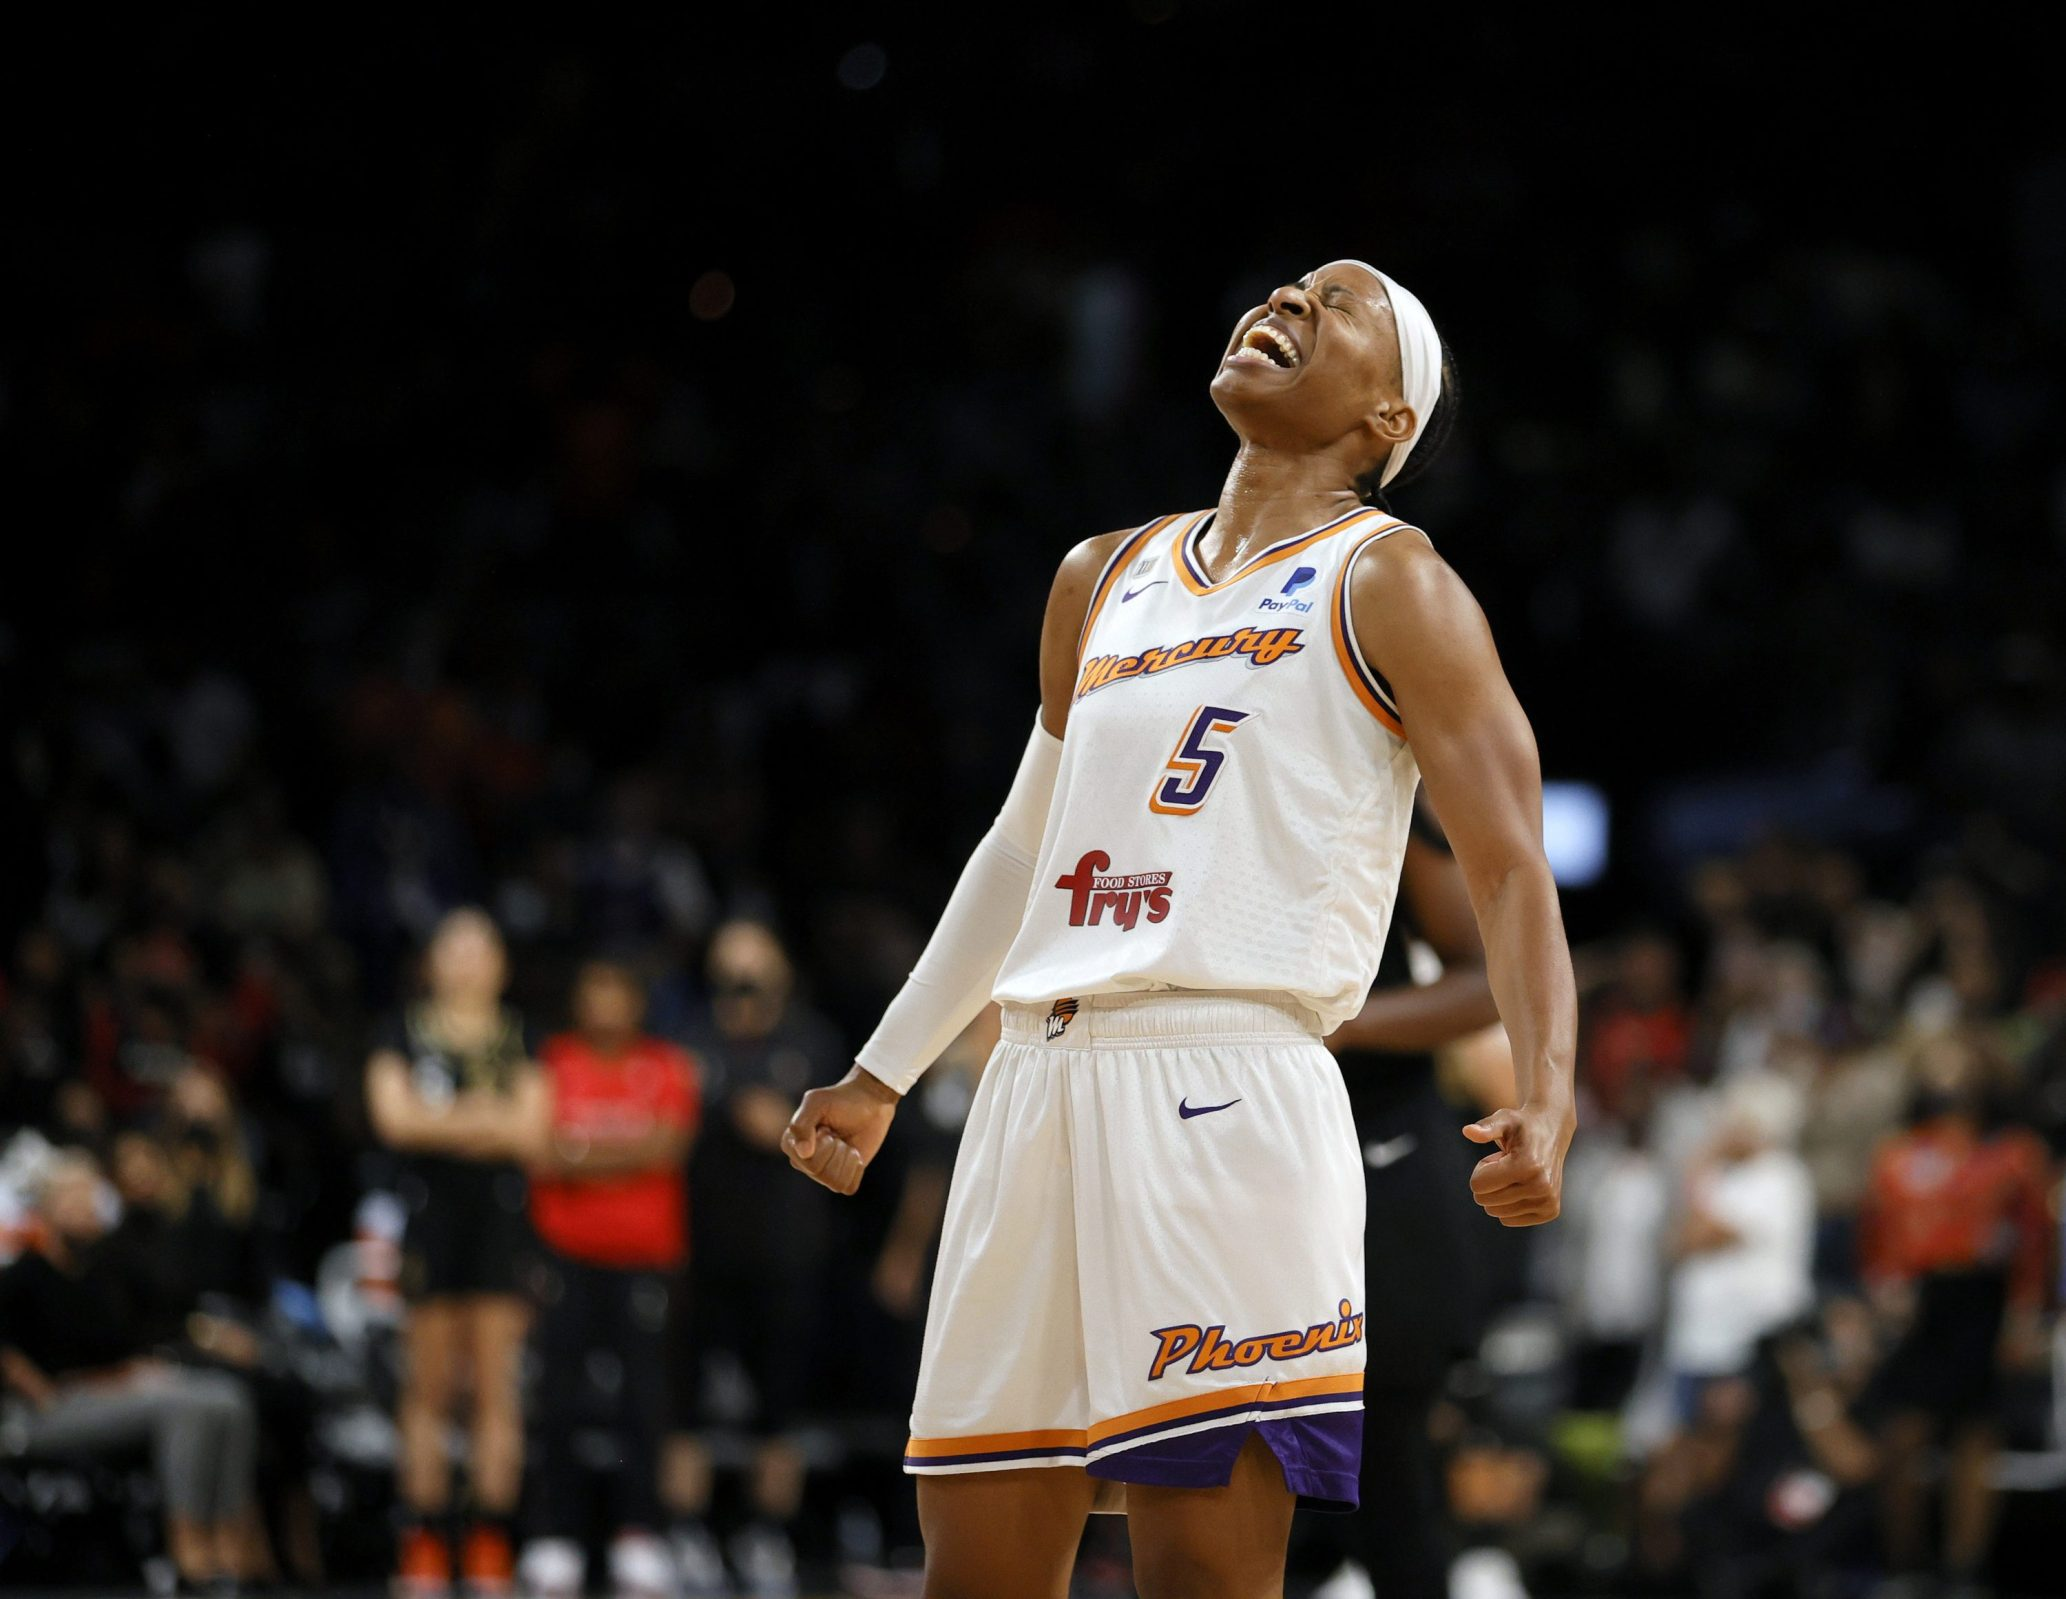 Shey Peddy #5 of the Phoenix Mercury celebrates as time expires in Game Five of the 2021 WNBA Playoffs semifinals against the Las Vegas Aces at Michelob ULTRA Arena on October 8, 2021 in Las Vegas, Nevada. The Mercury defeated the Aces 87-84 to win the series.